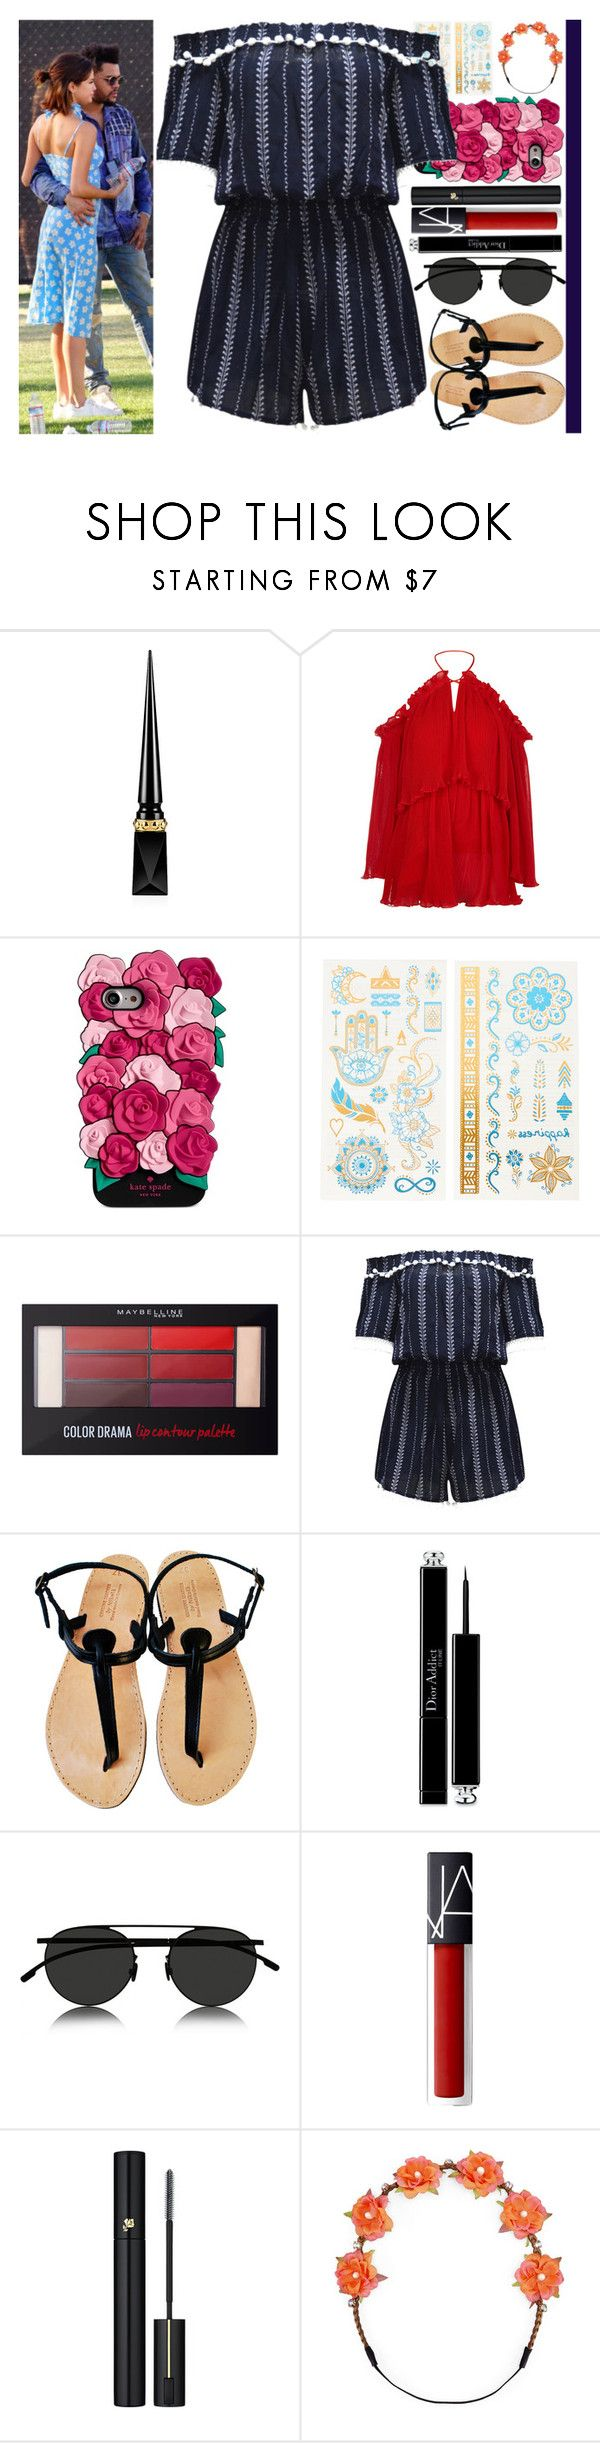 """With Selena Gomez And The Weeknd (Abel Makkonen Tesfaye)"" by angelbrubisc ❤ liked on Polyvore featuring Christian Louboutin, Alice McCall, Kate Spade, claire's, Maybelline, WithChic, Christian Dior, Mykita, Lancôme and Carole"